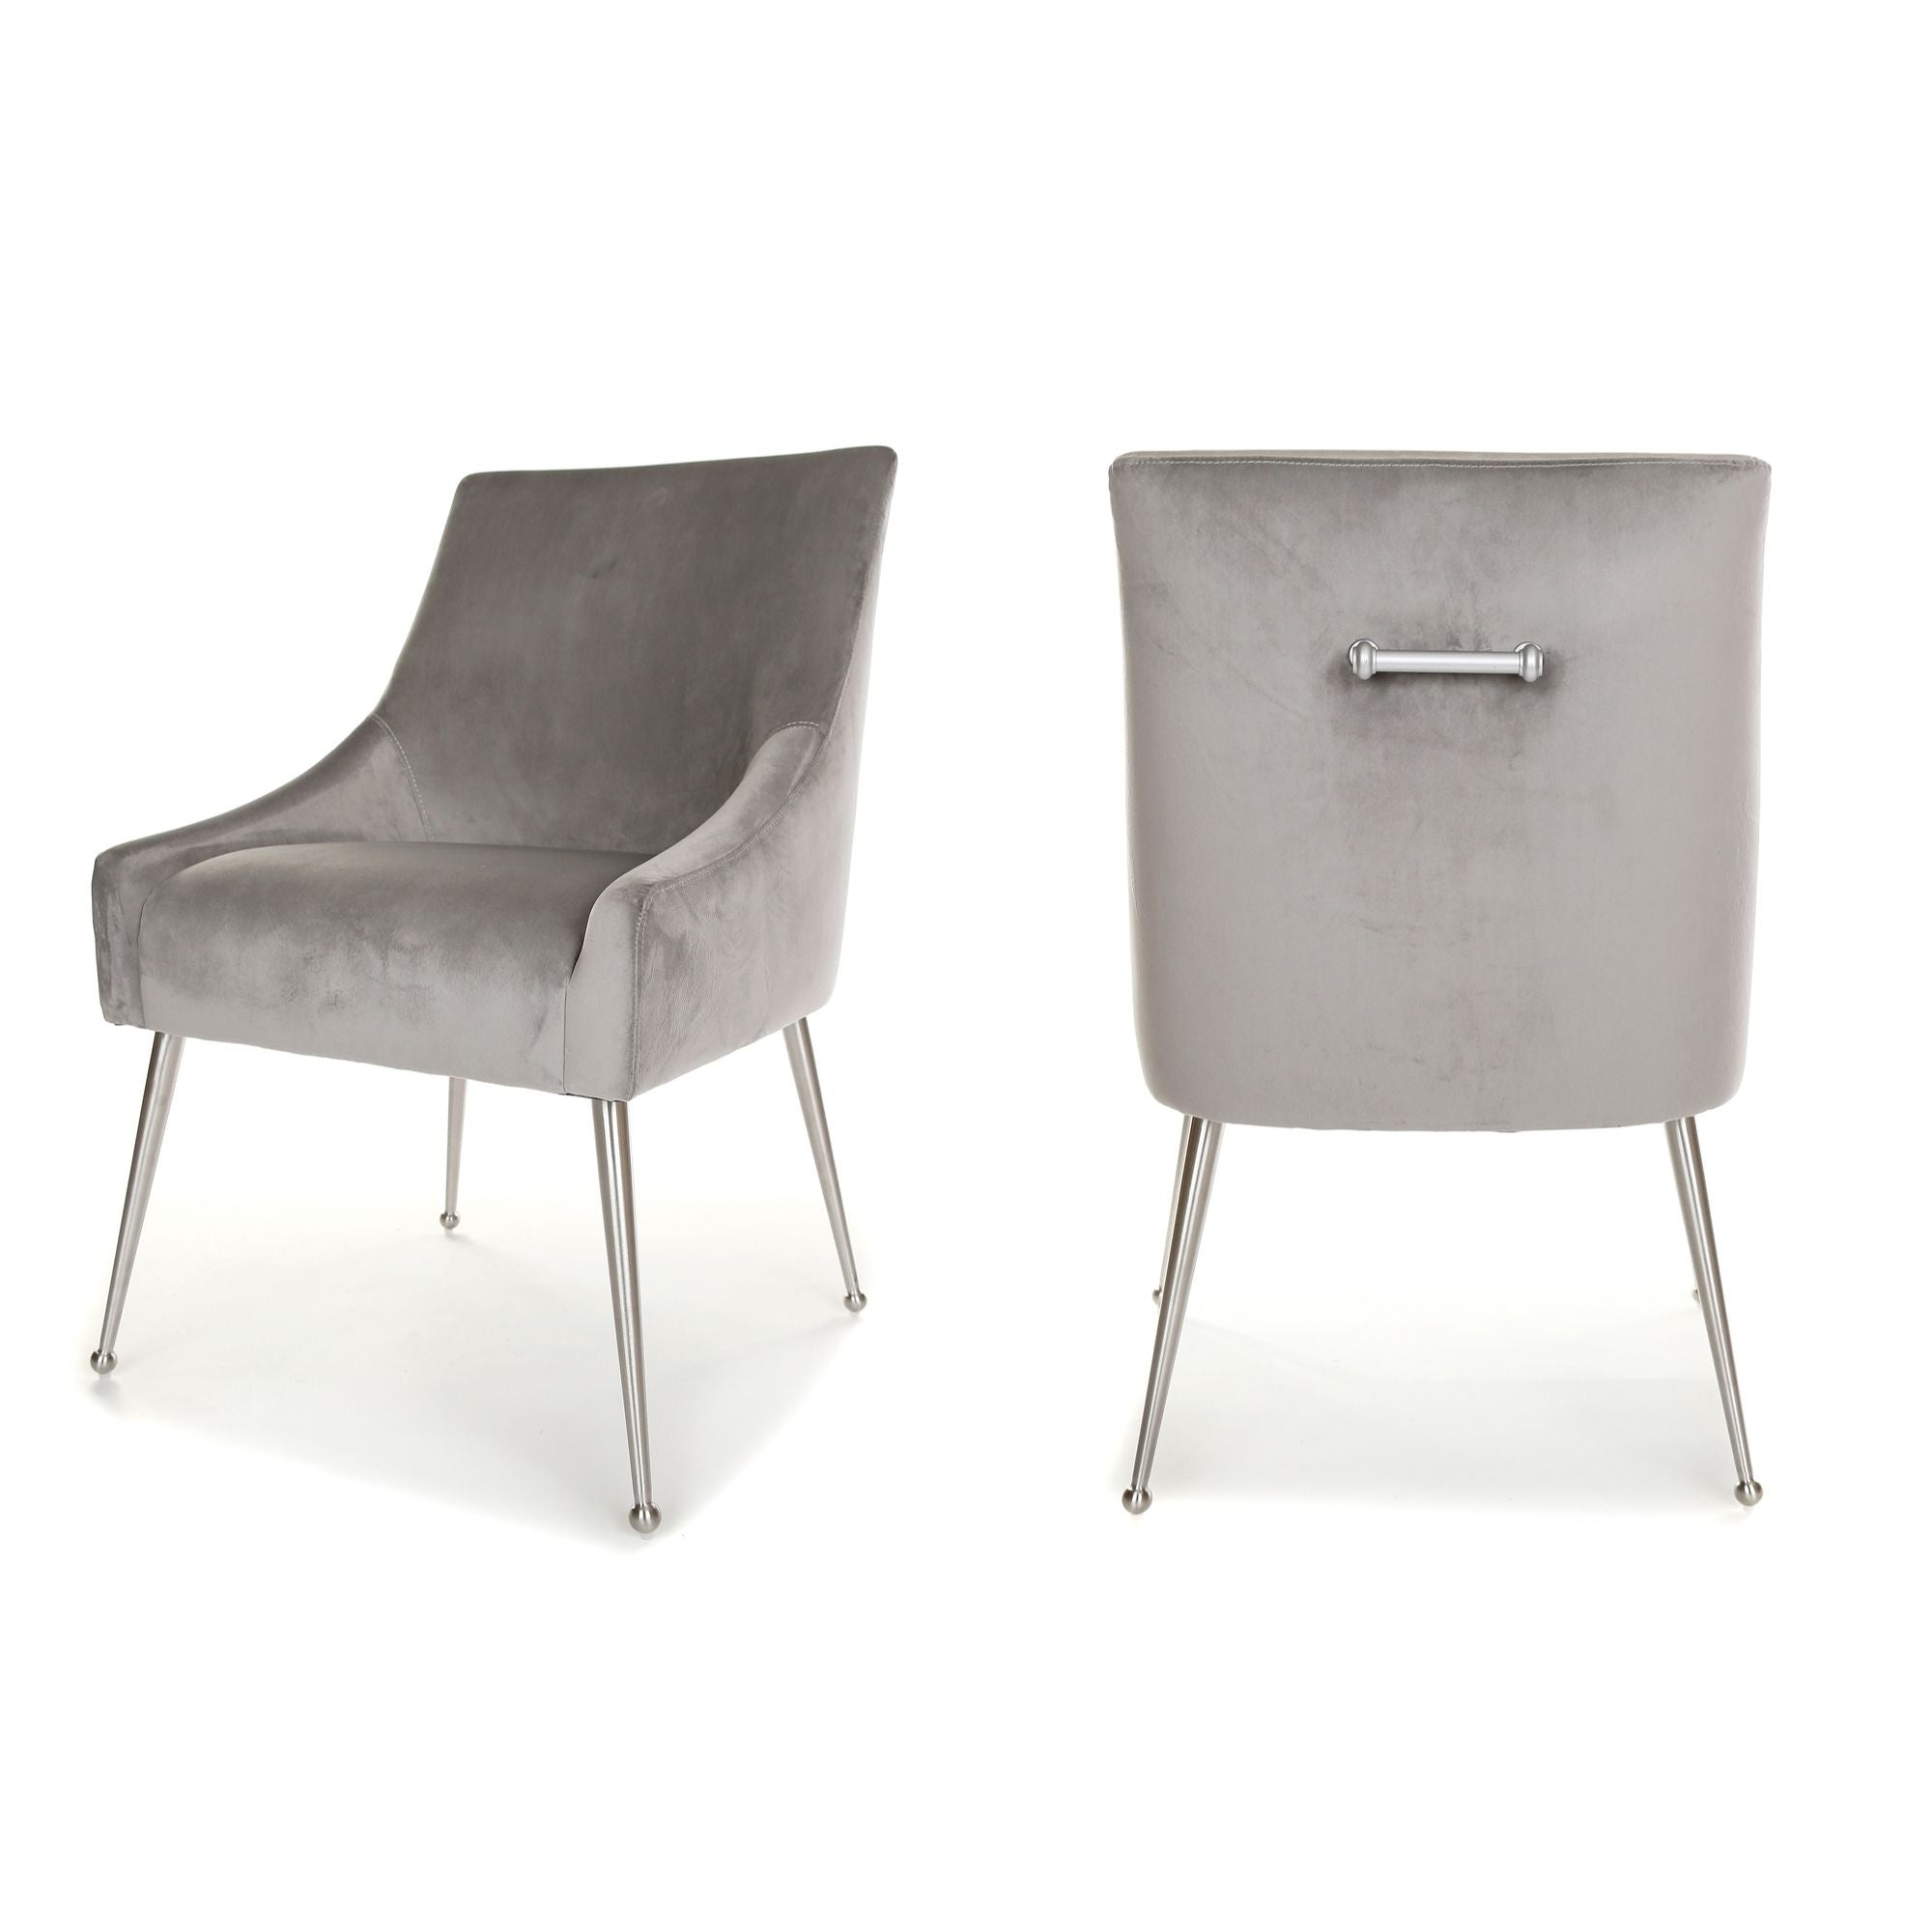 Finn Dining Chair, main image. Upholstered in Light Grey Velvet, with Brushed Silver Legs and handle